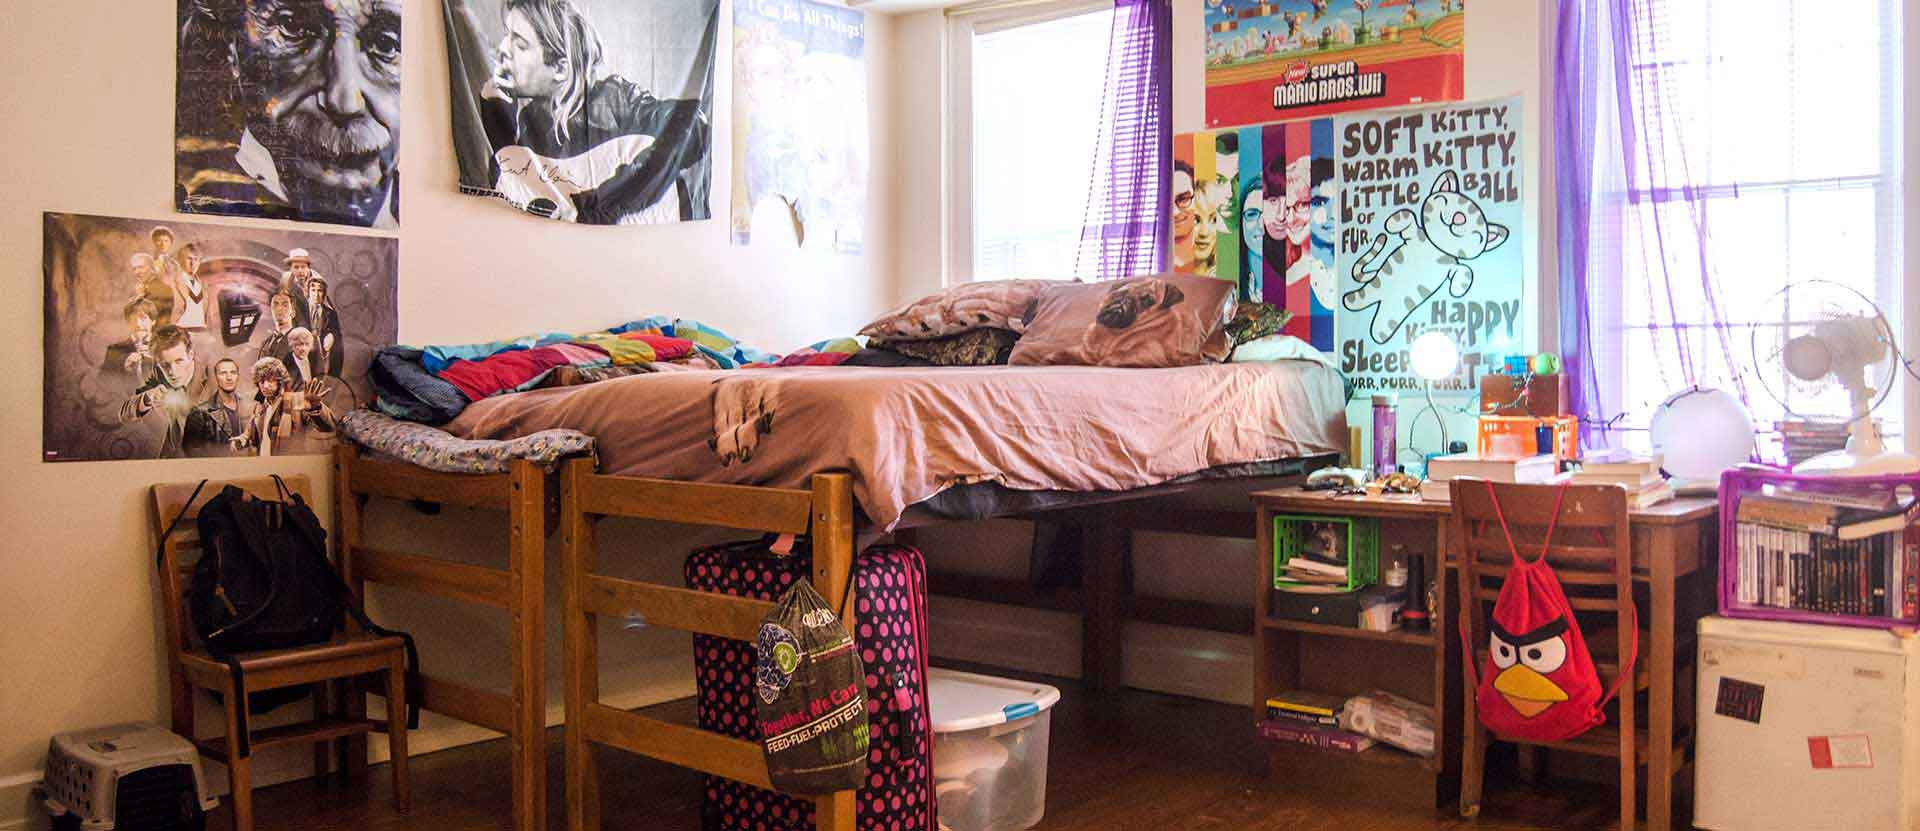 dorm room with bed and posters on the wall